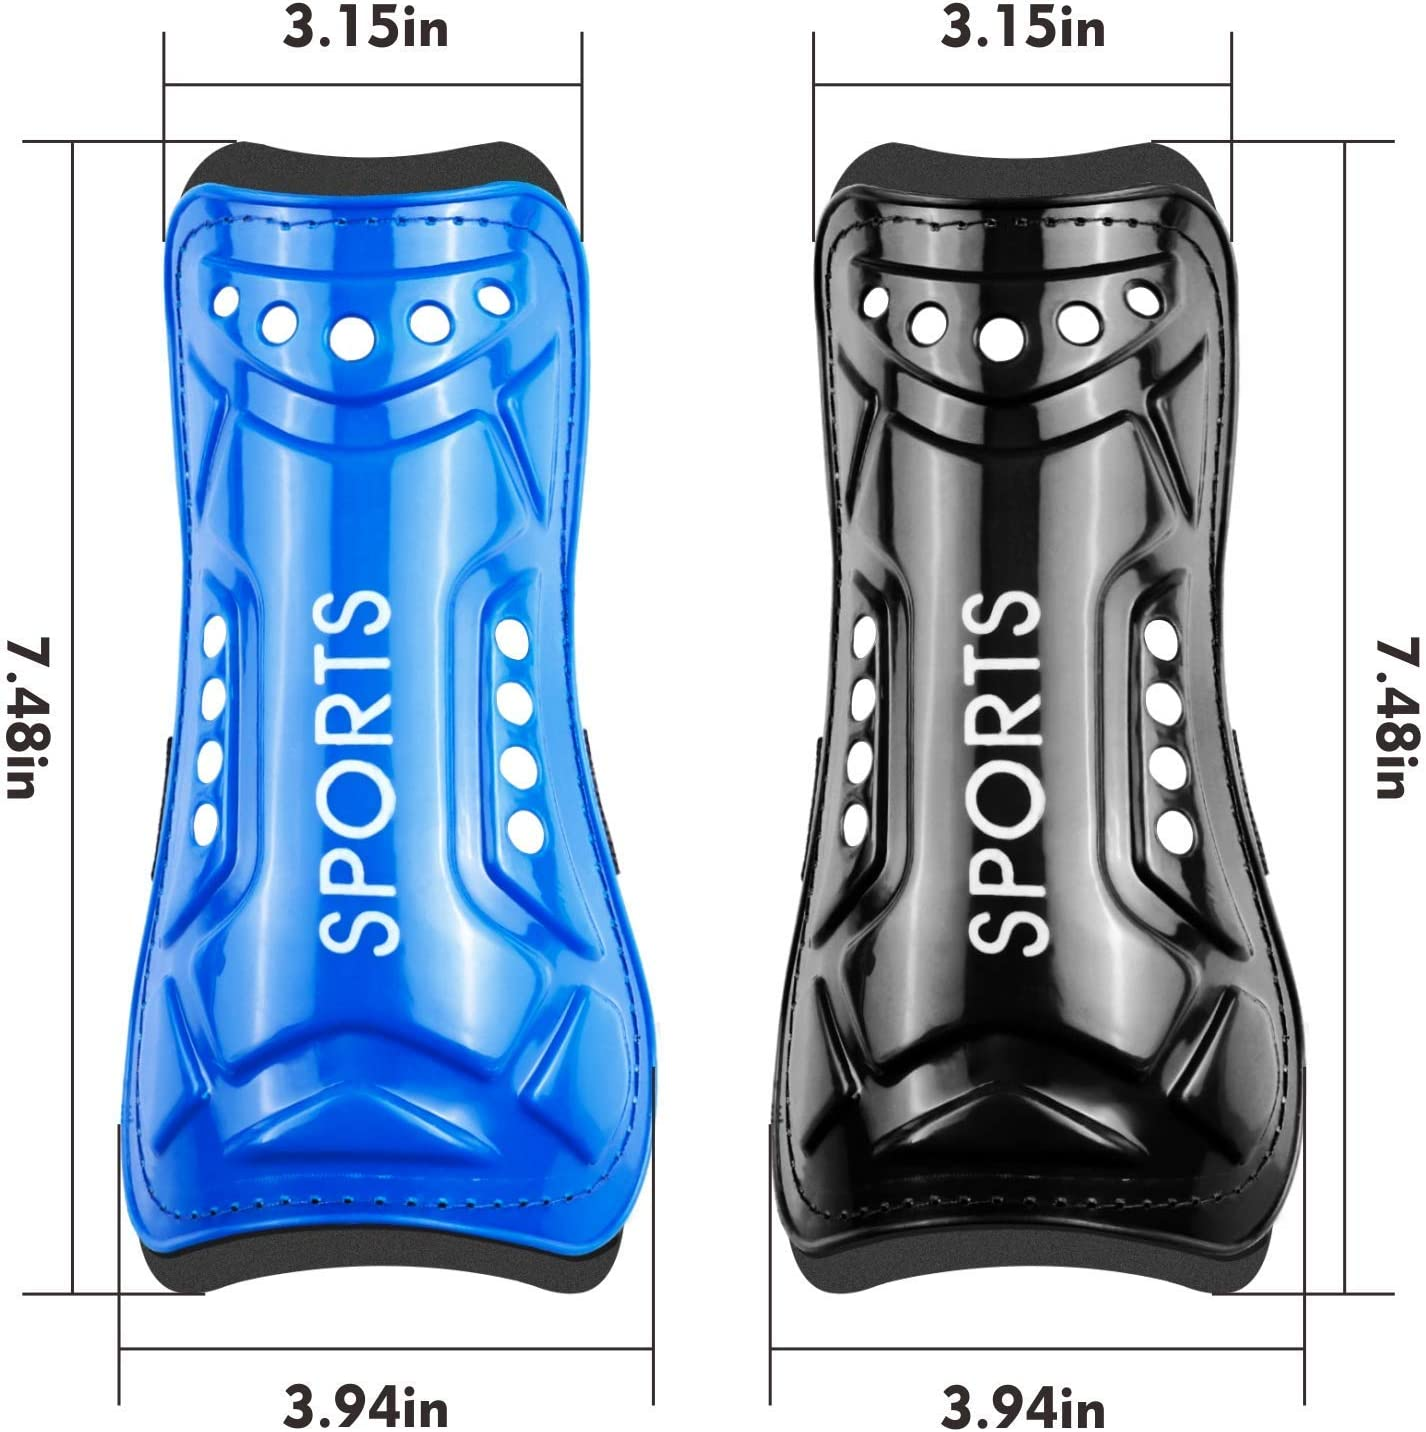 Shin Guards for Kids Youth Soccer Shin Guards 2 Pair Lightweight and Breathable Children's Calf Protectors for 3-10 Years Old Boys Girls Toddler Kids Teenagers (Black & Blue) : Sports & Outdoors